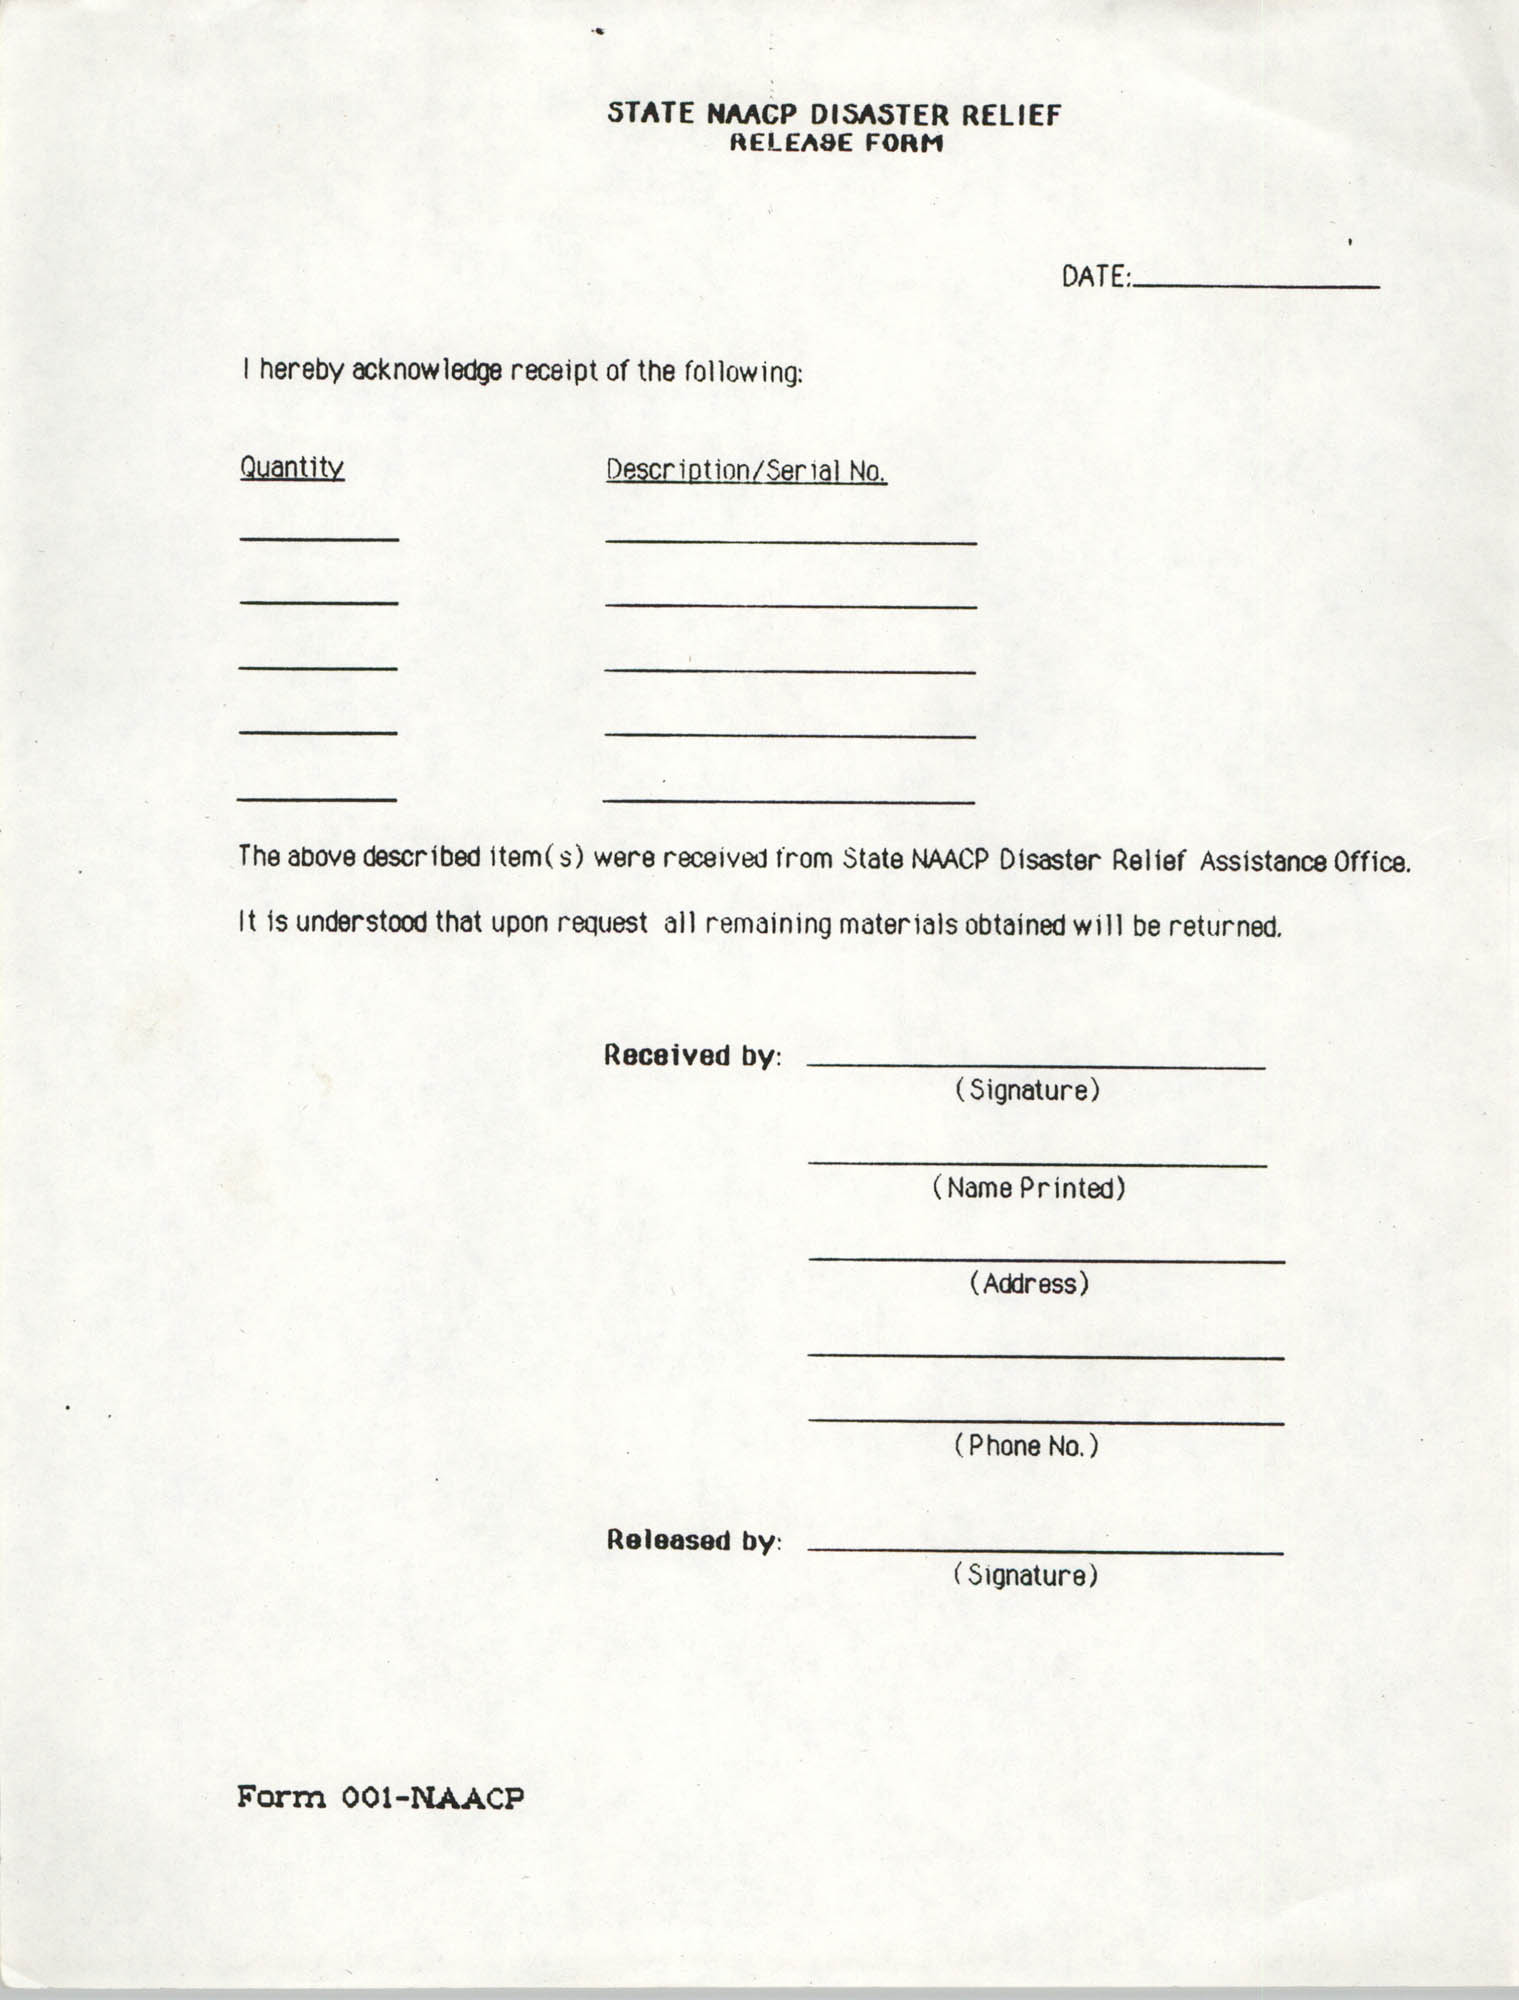 State NAACP Disaster Relief, Hurricane Huge Release Form, 1989, Page 18